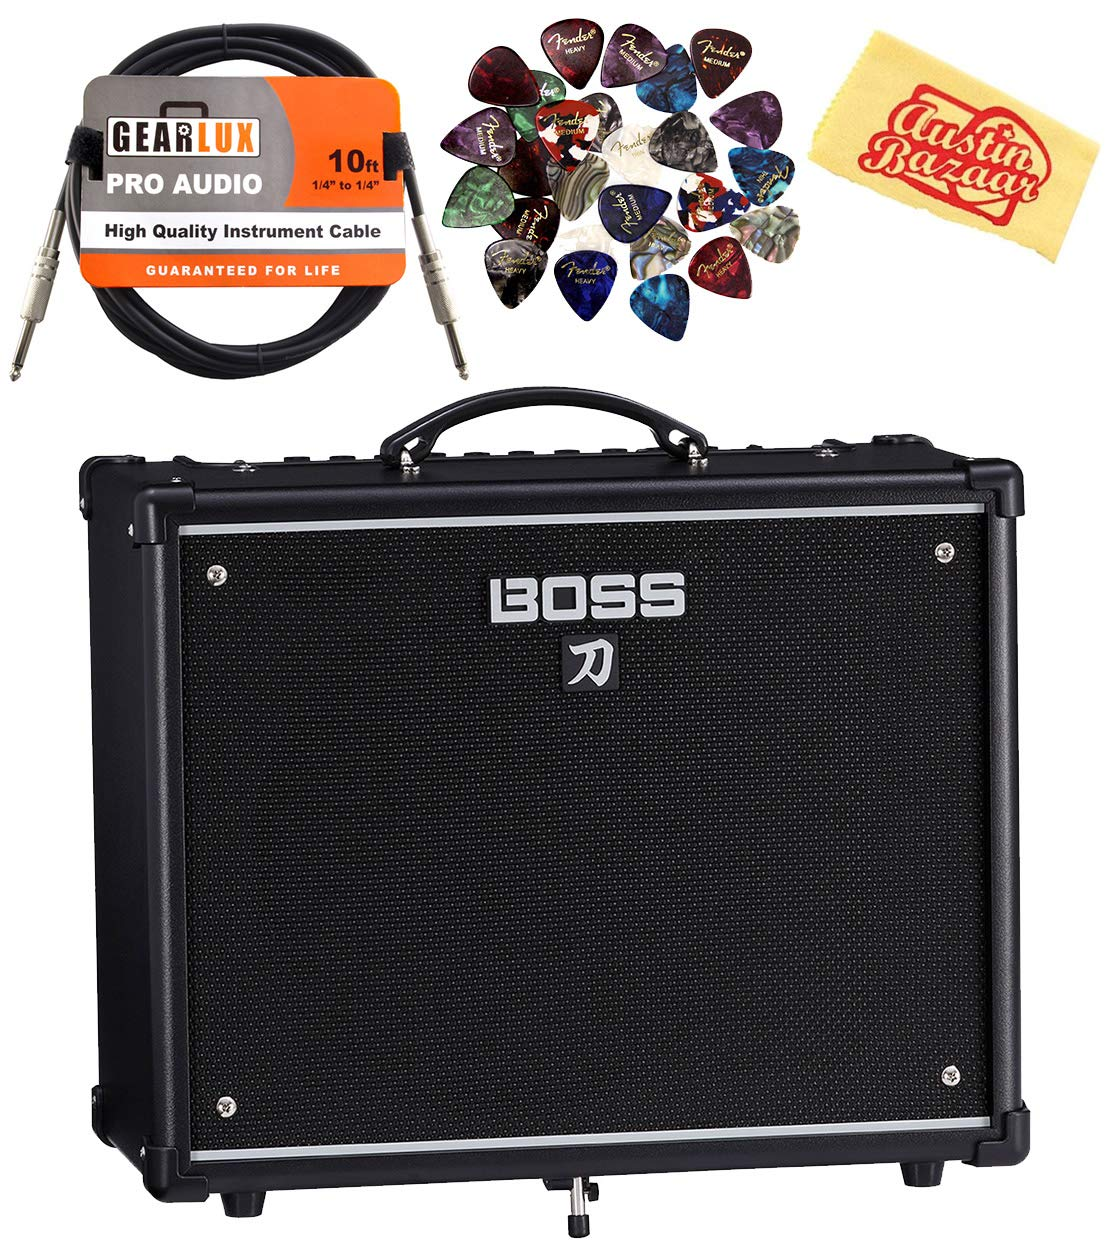 Boss Katana 50-Watt 12-Inch Guitar Combo Amplifier Bundle with Instrument Cable, 24 Picks, and Austin Bazaar Polishing Cloth by Boss